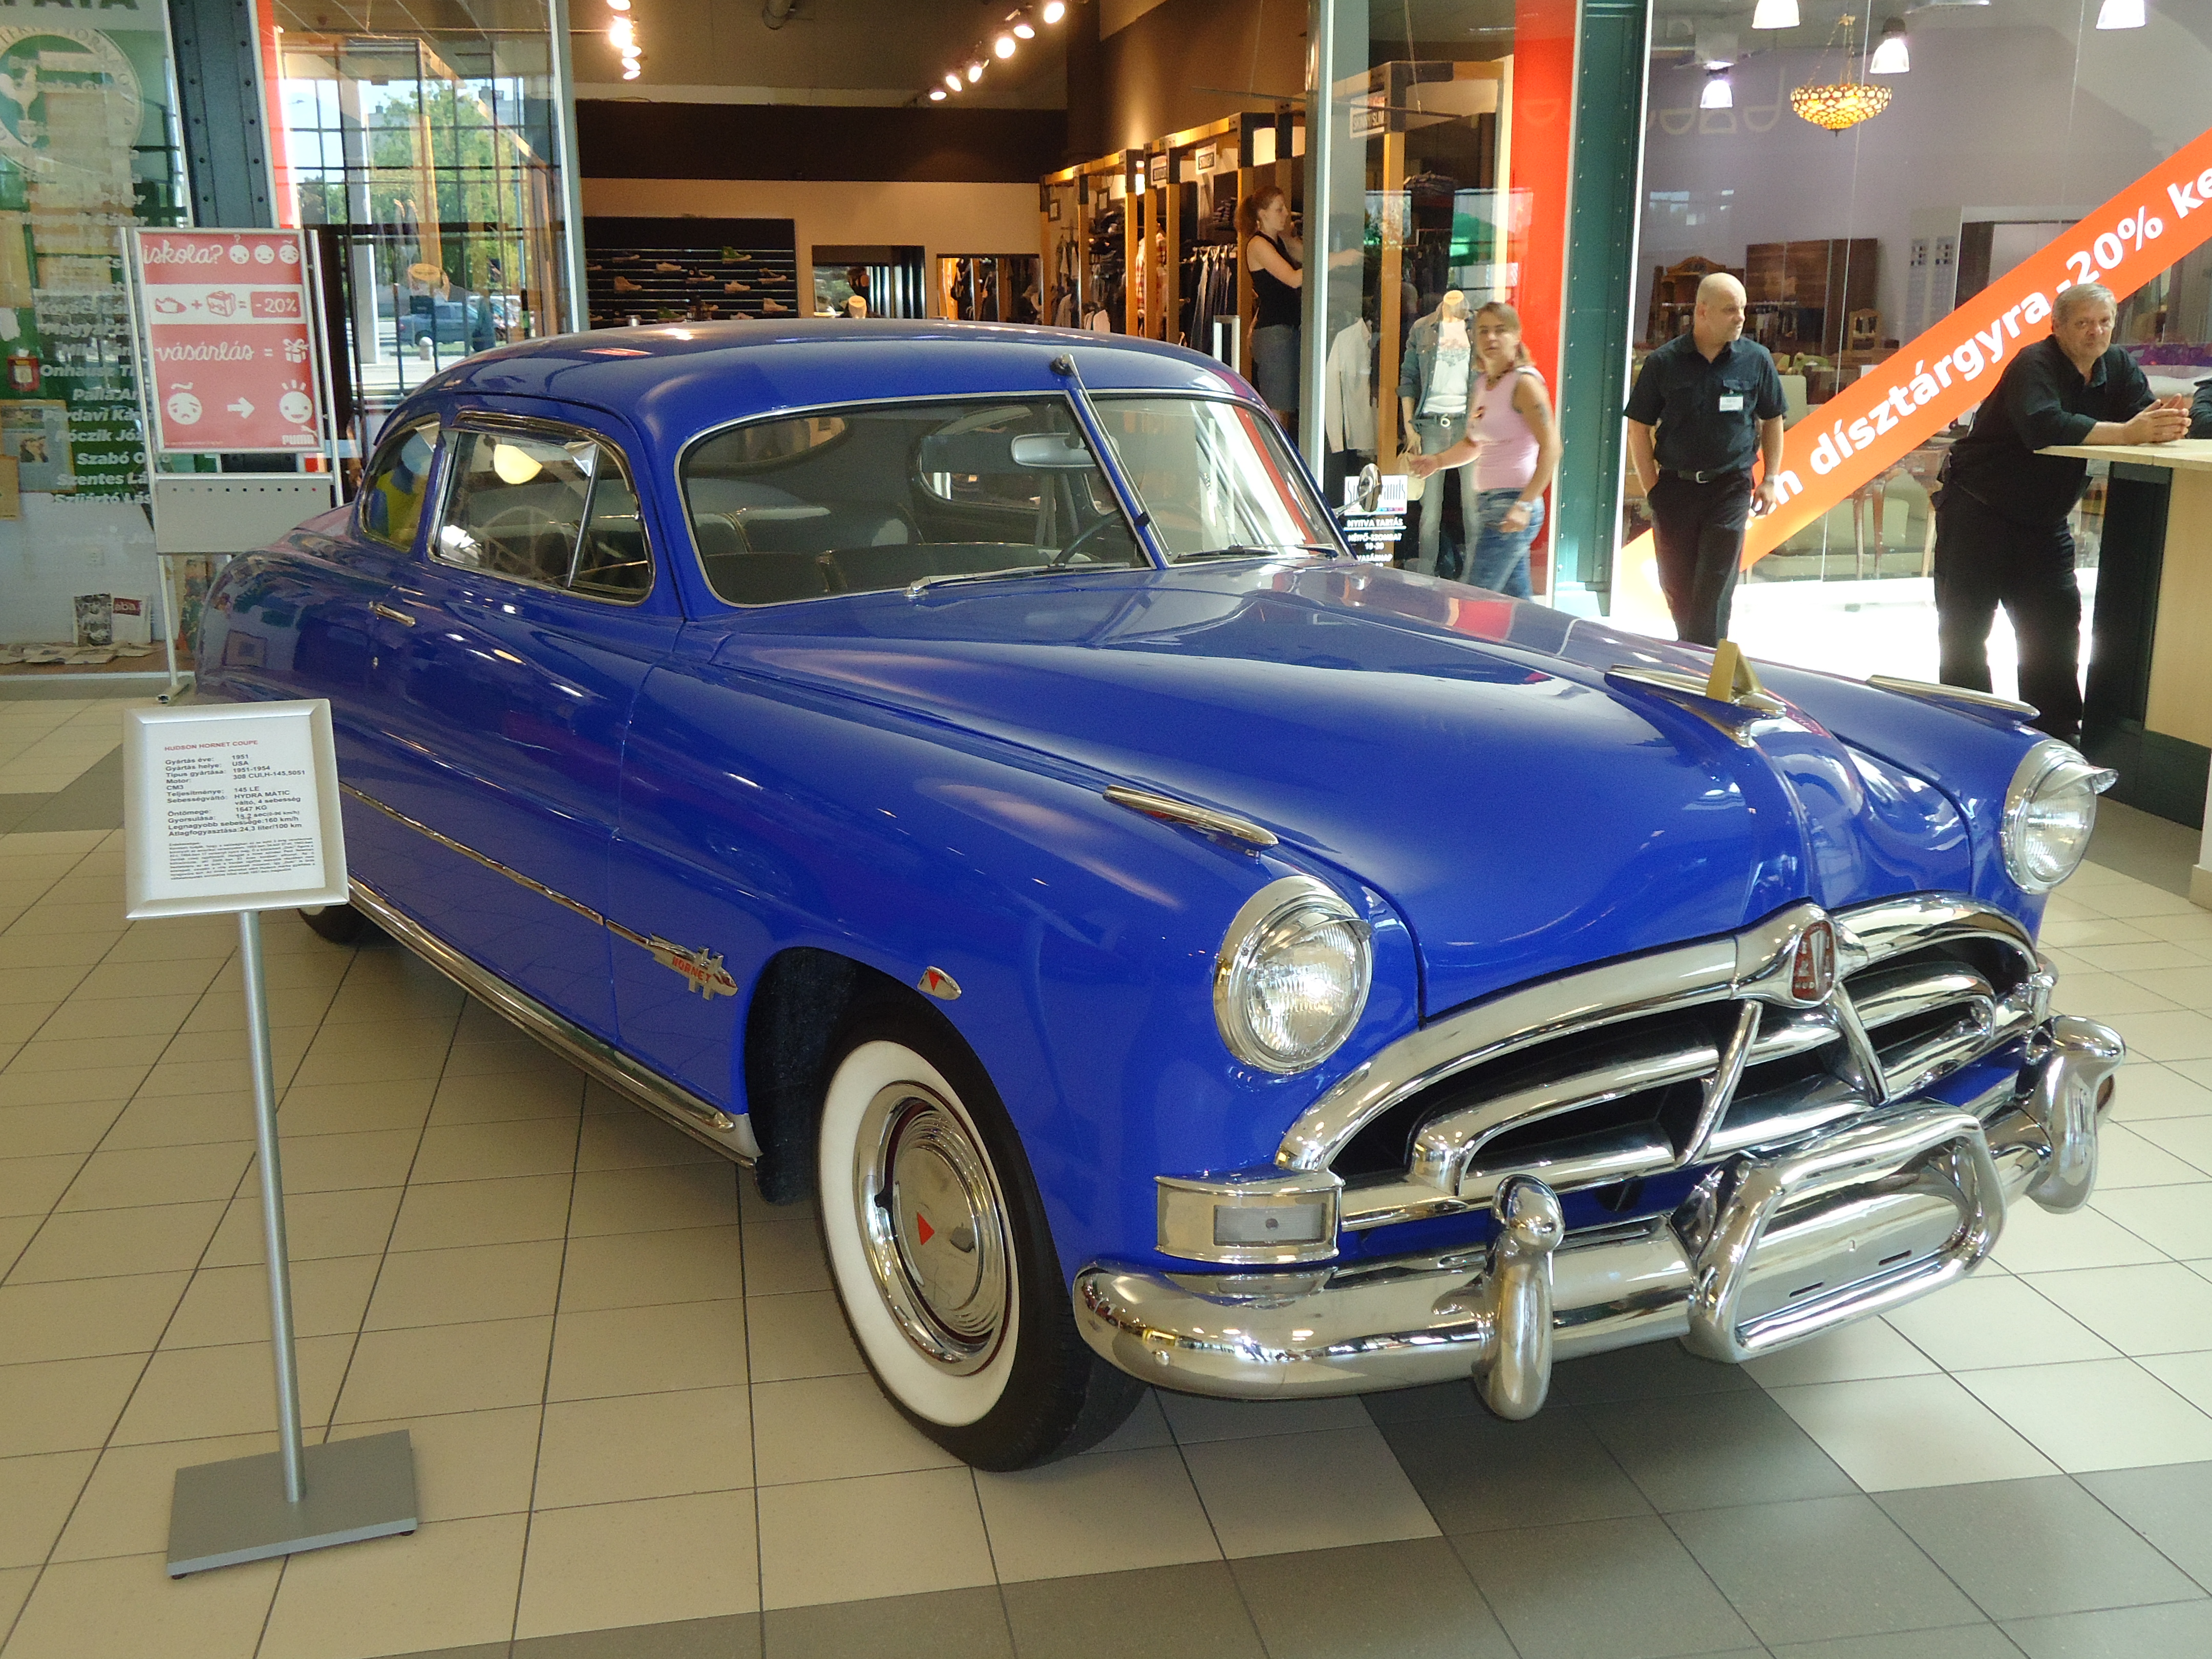 My Perfect Hudson Hornet 3dtuning Probably The Best Car